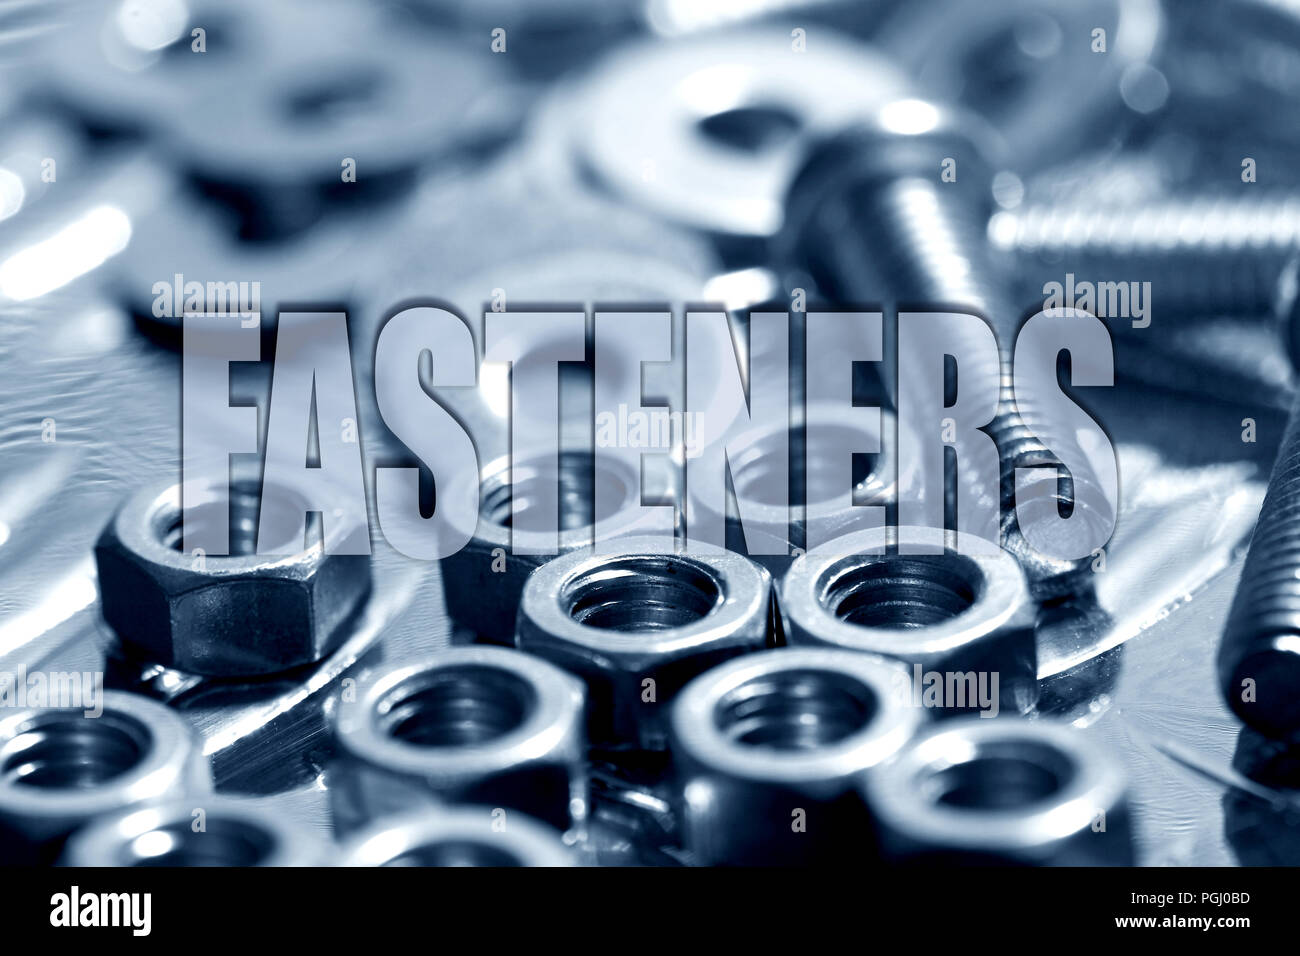 Fasteners written on top of nuts and bolts in blue background Stock Photo